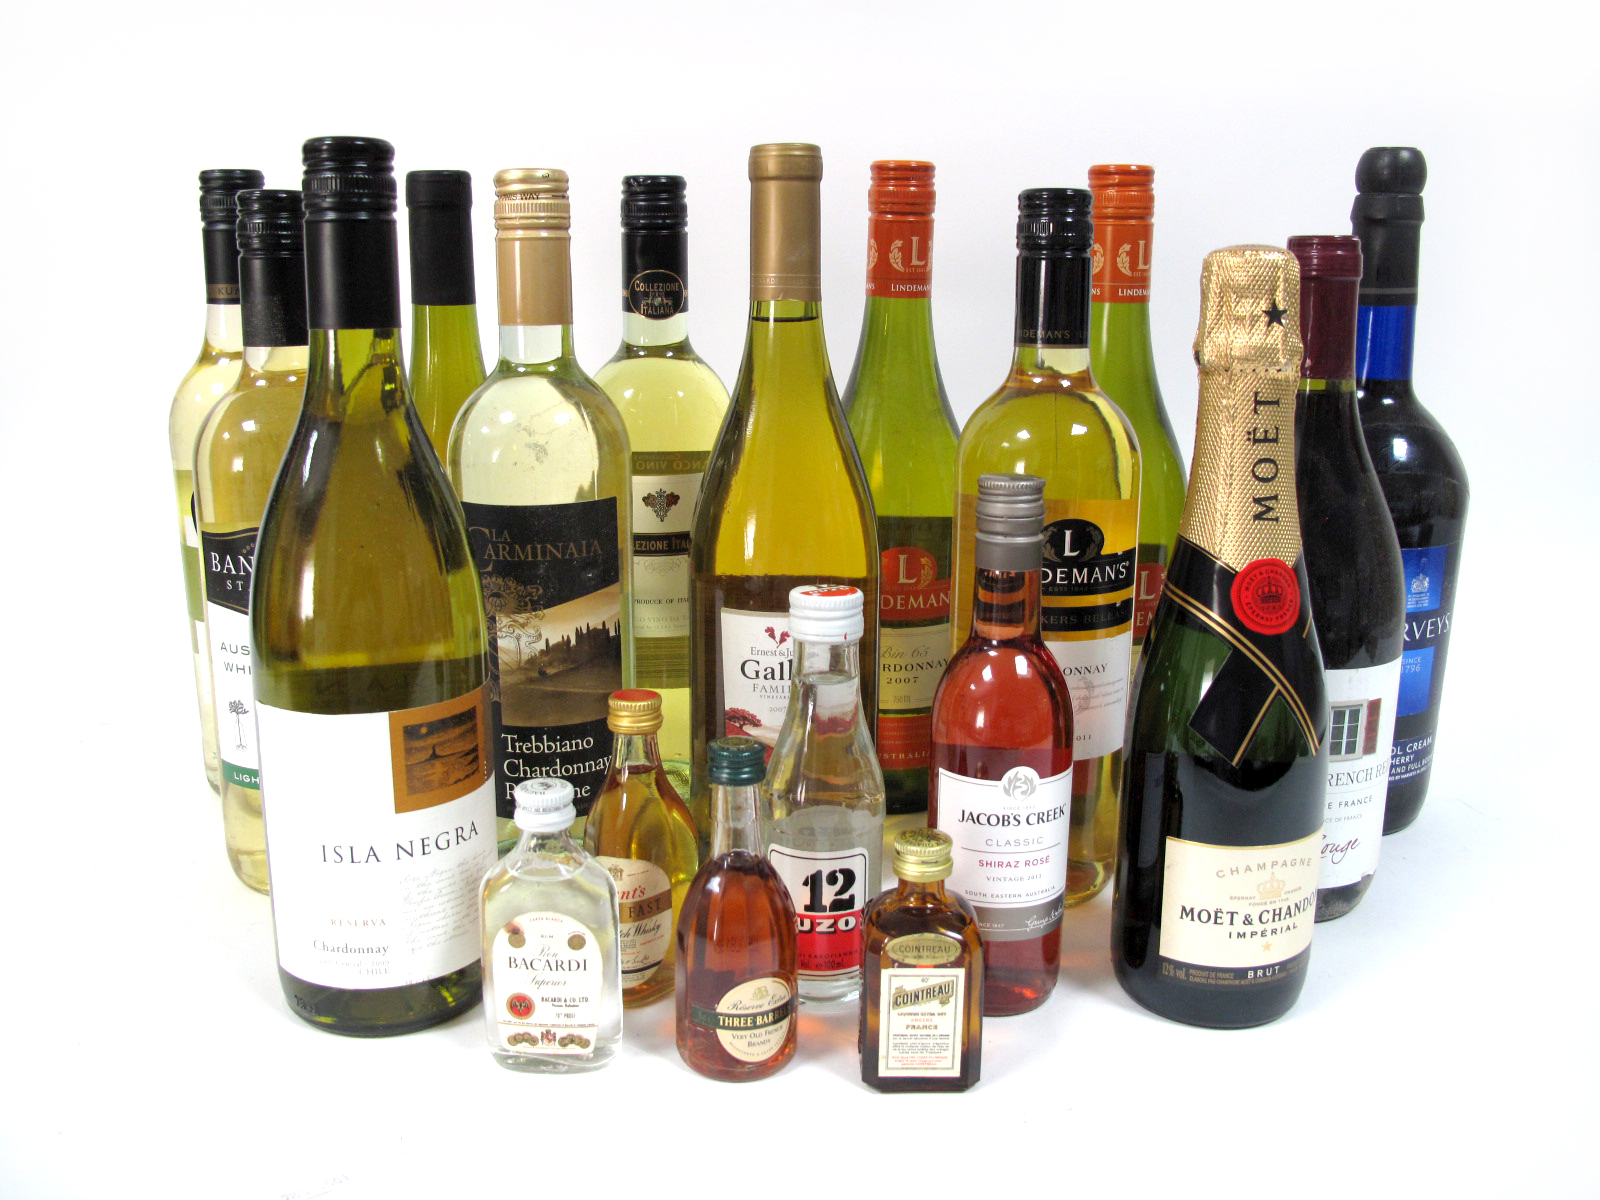 Lot 3 - Wines - A Collection of Ten Assorted White Wines, Harvey's Sherry, One Bottle of Red Wine, Five